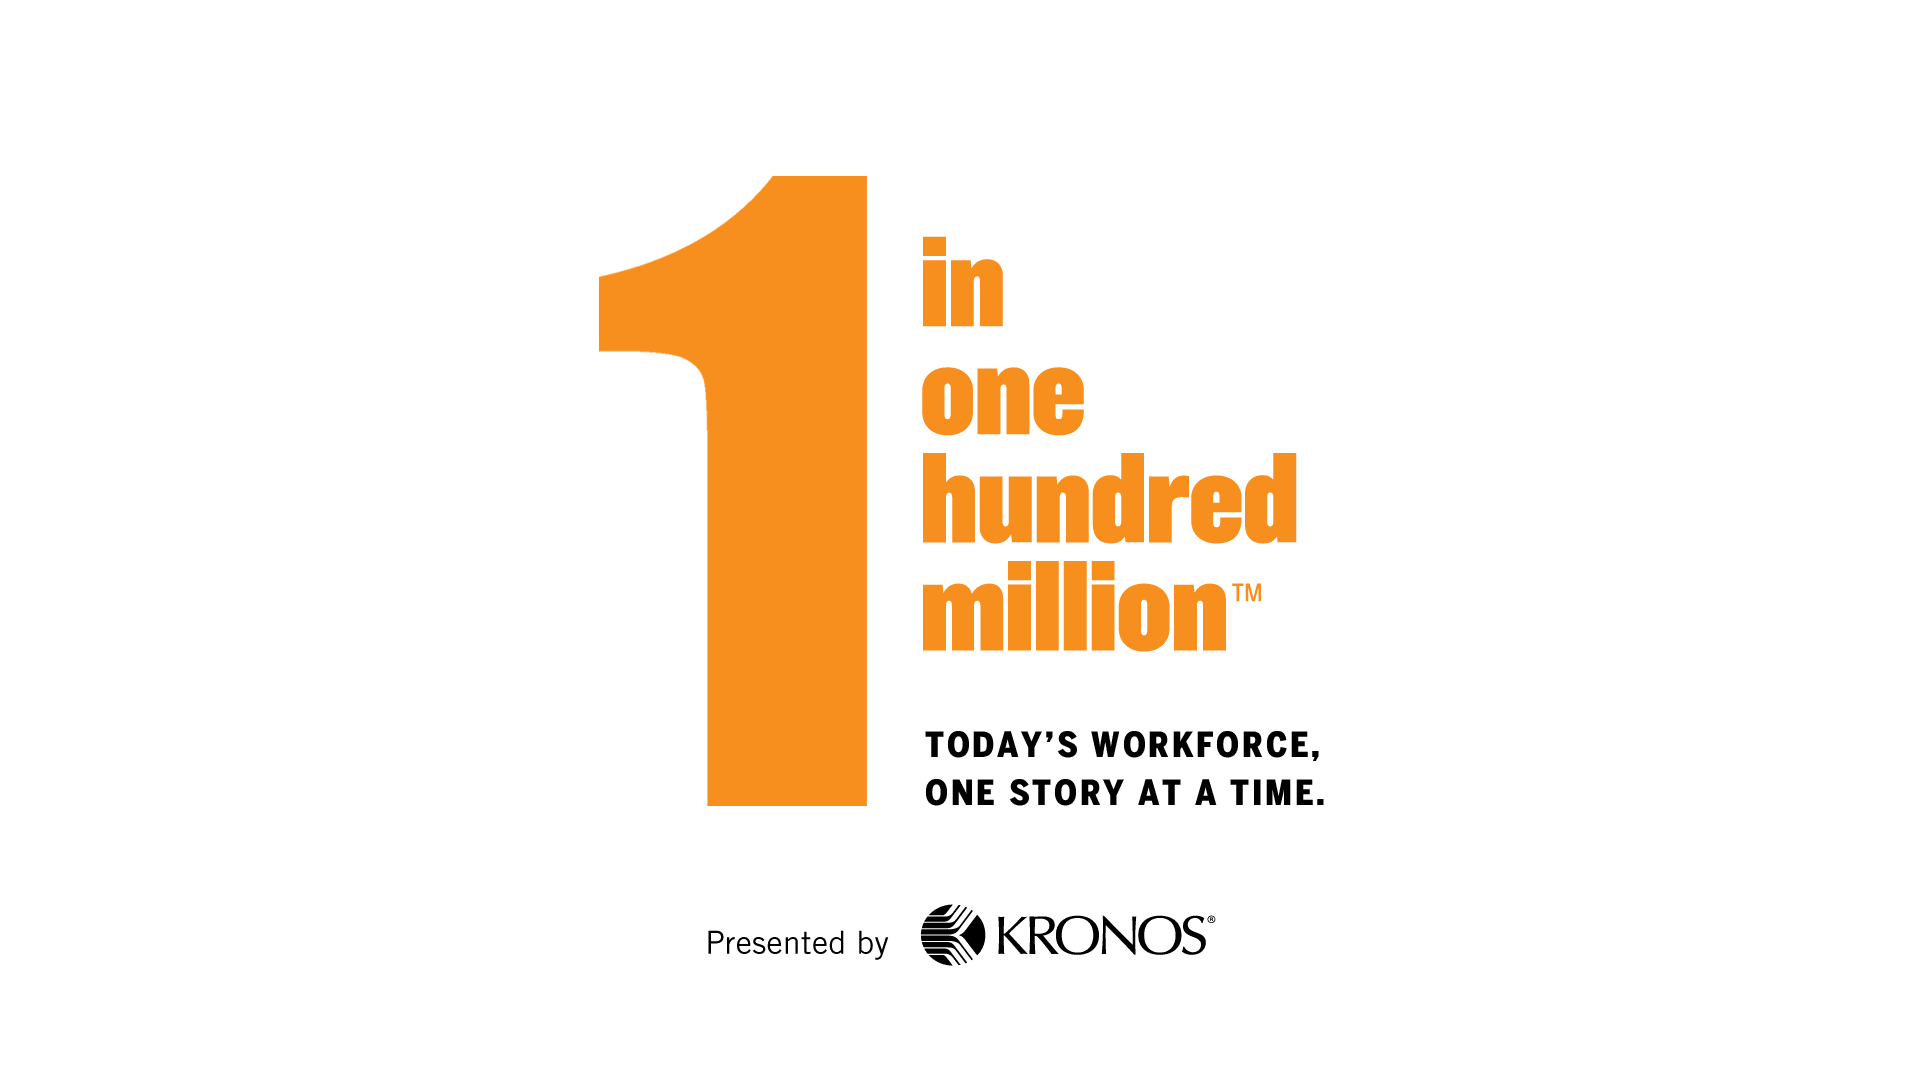 1 in 100 million - celebrating today's workforce